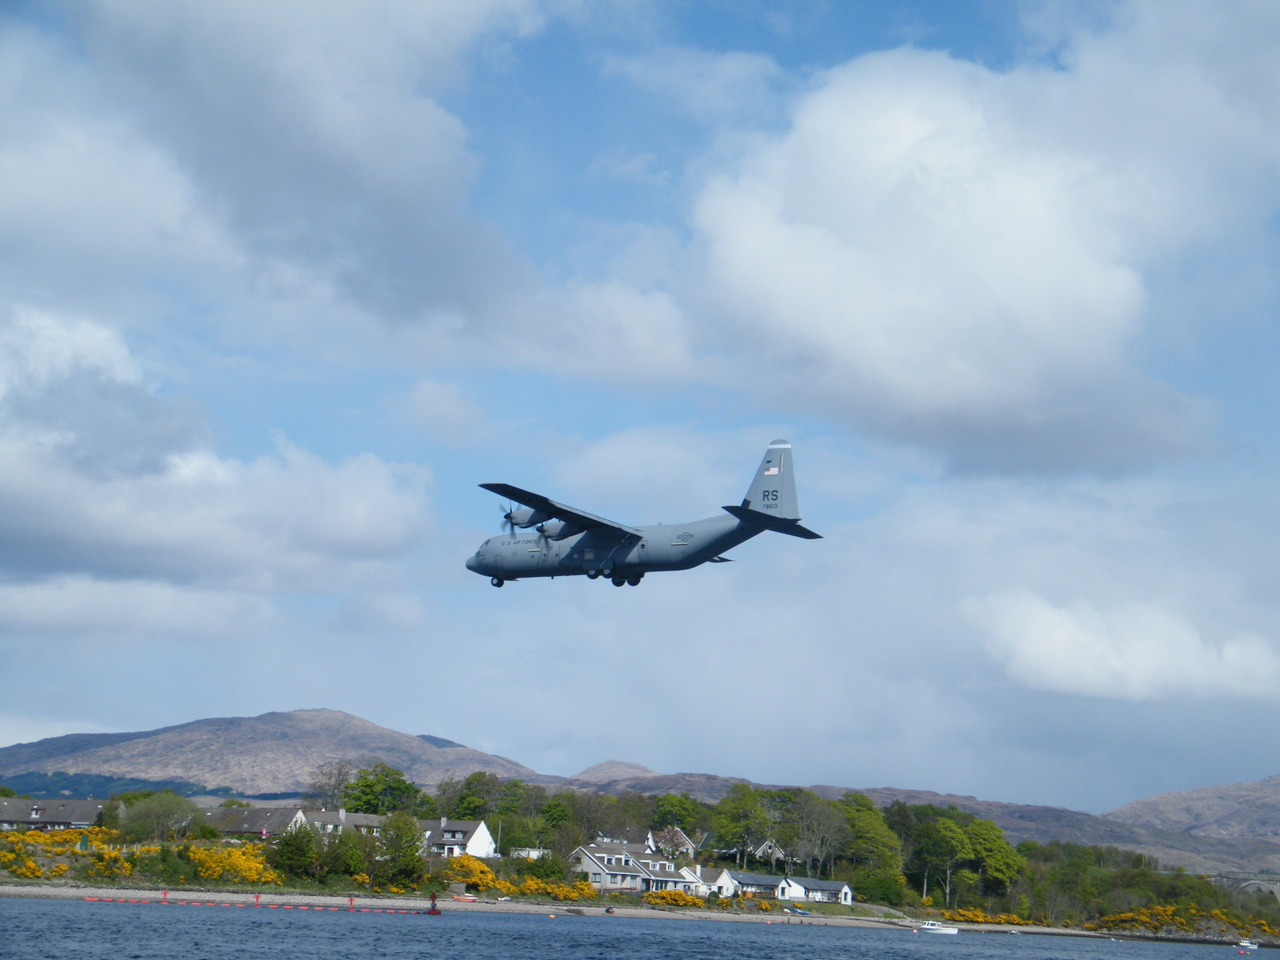 US aircraft C-130J Hercules from Ramstein in Germany doing a fly by over Oban Airport